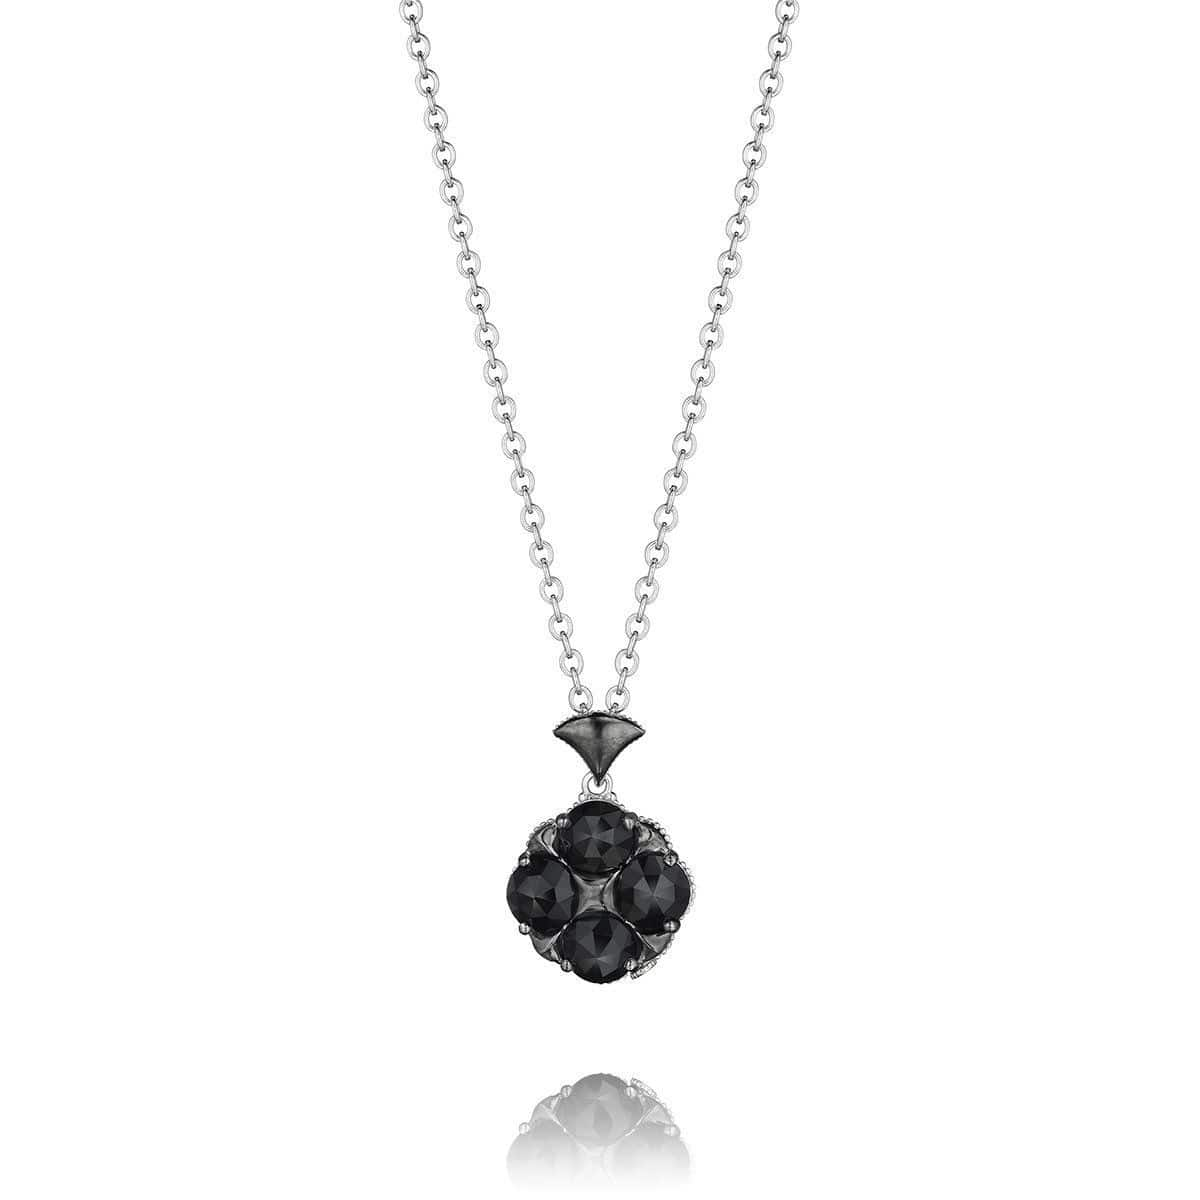 Silver Black Onyx Chain Necklace - SN16019-Tacori-Renee Taylor Gallery